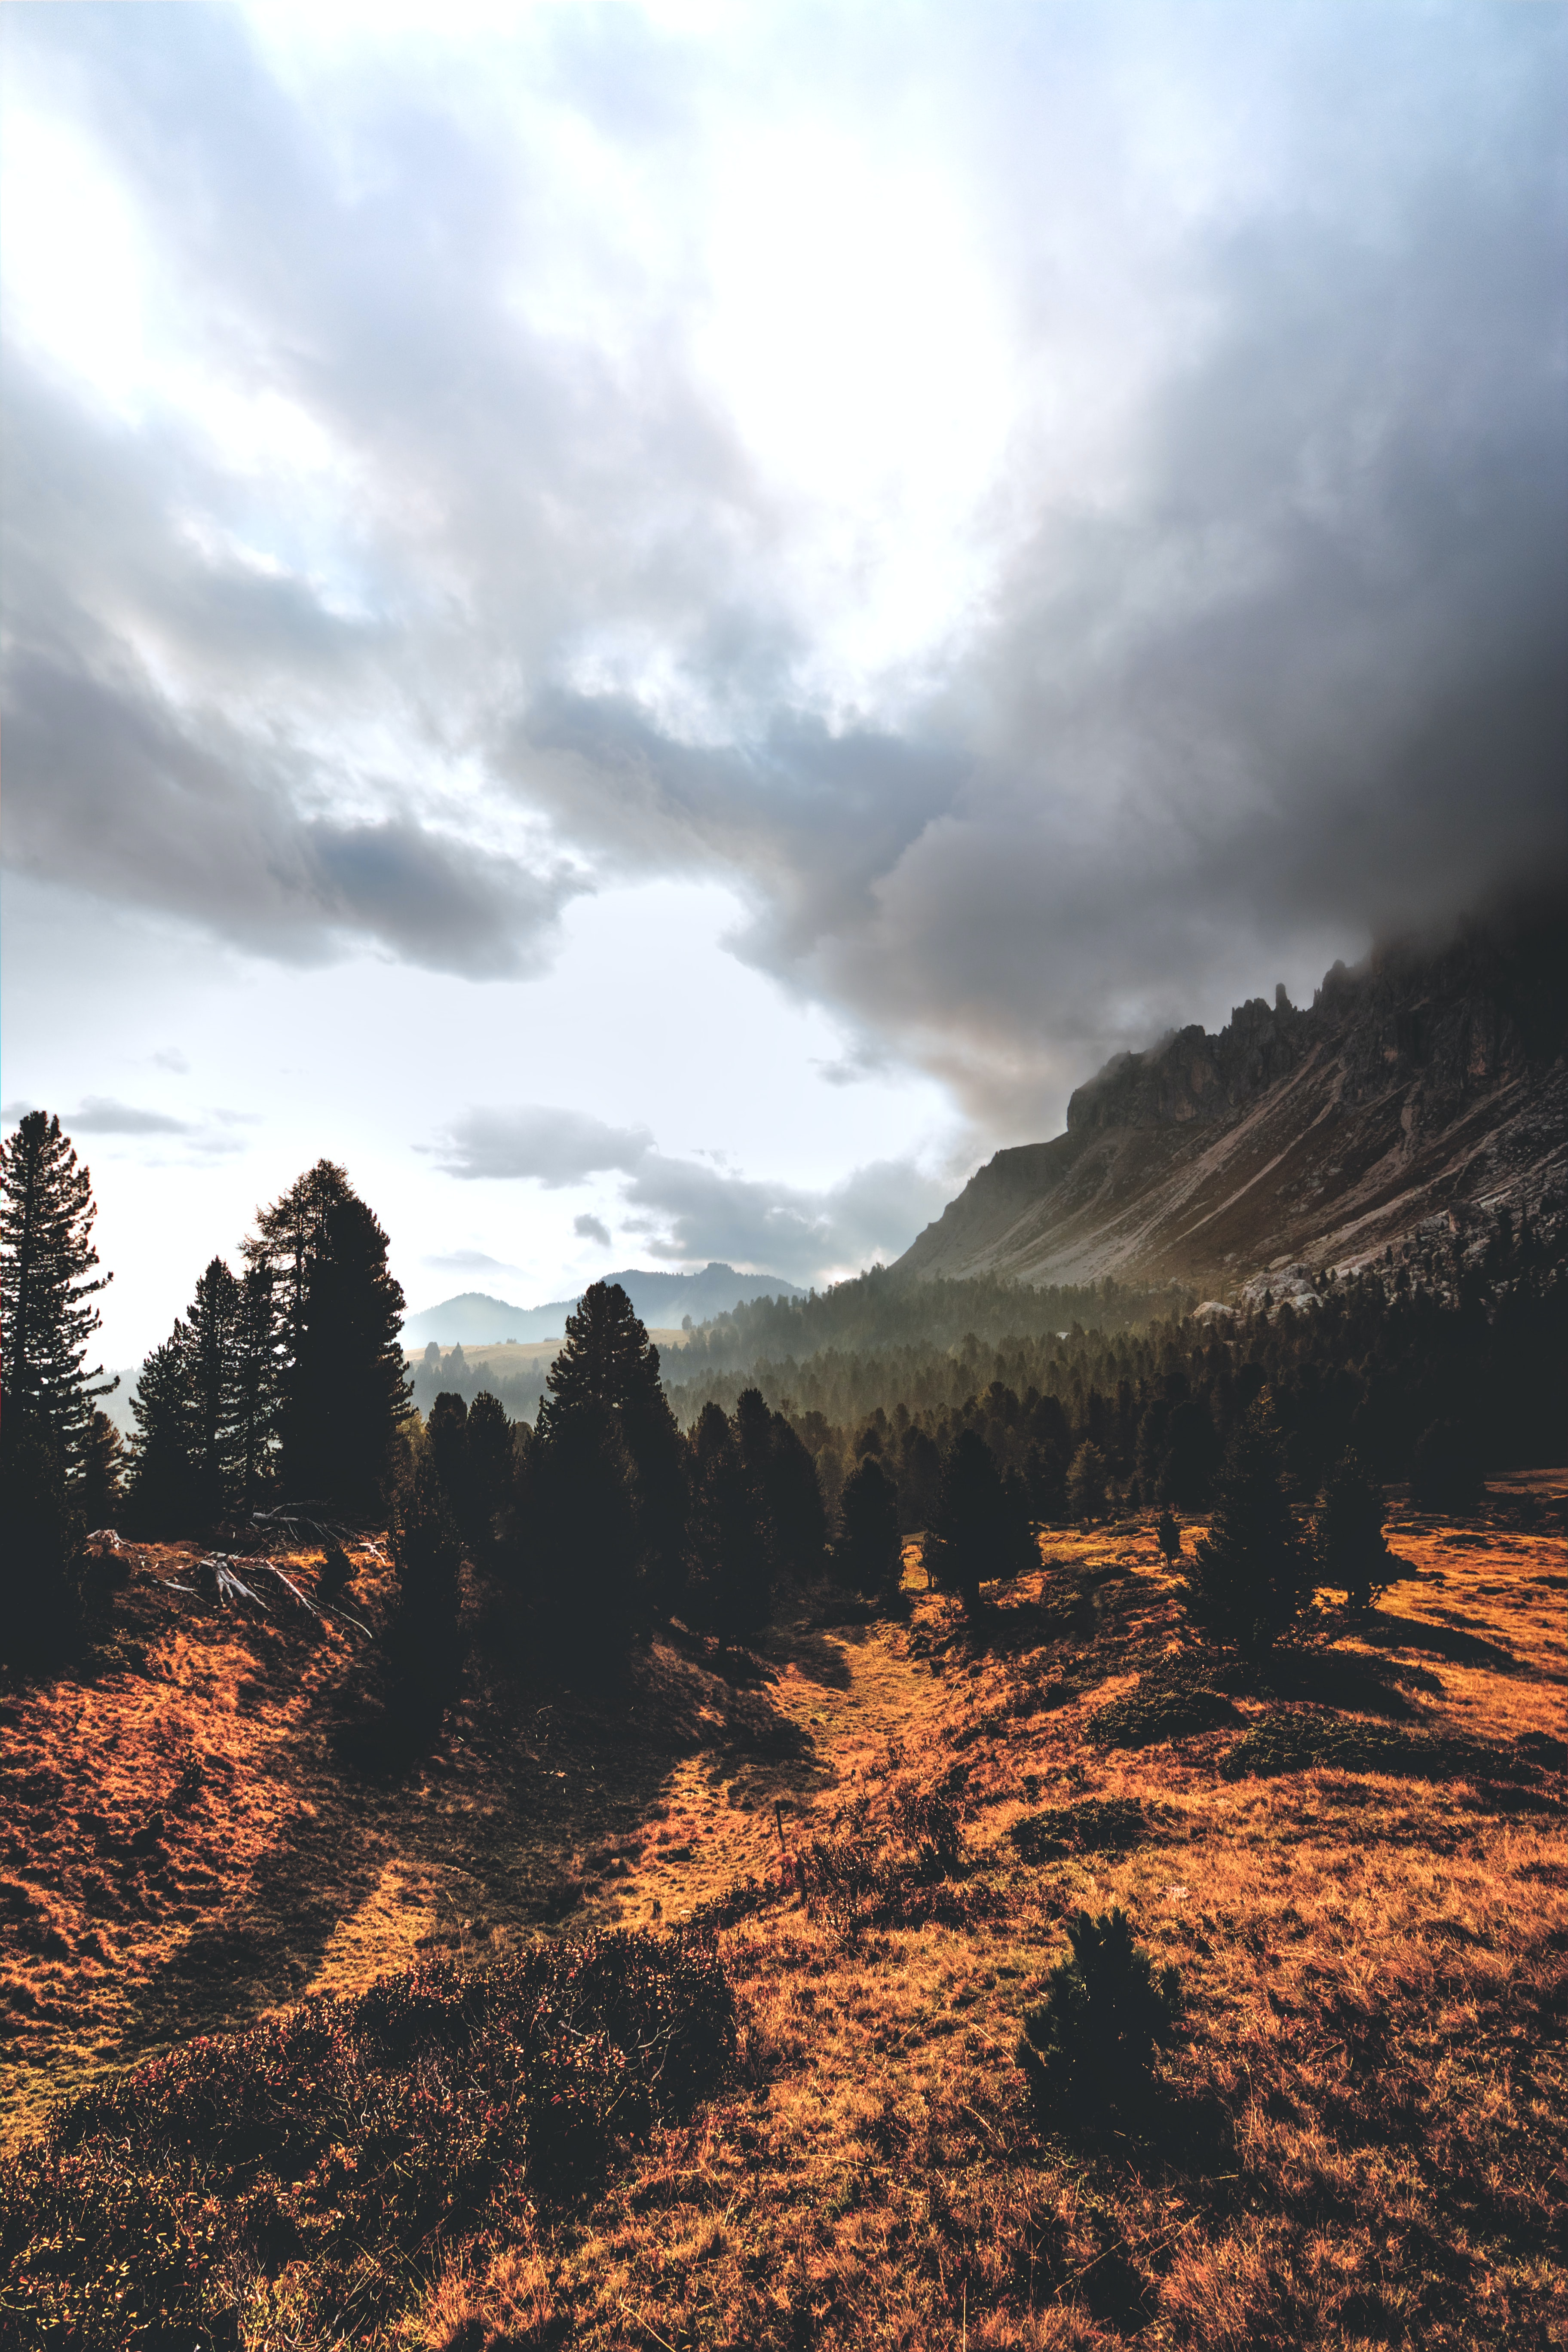 landscape photograph of trees and mountain ranges